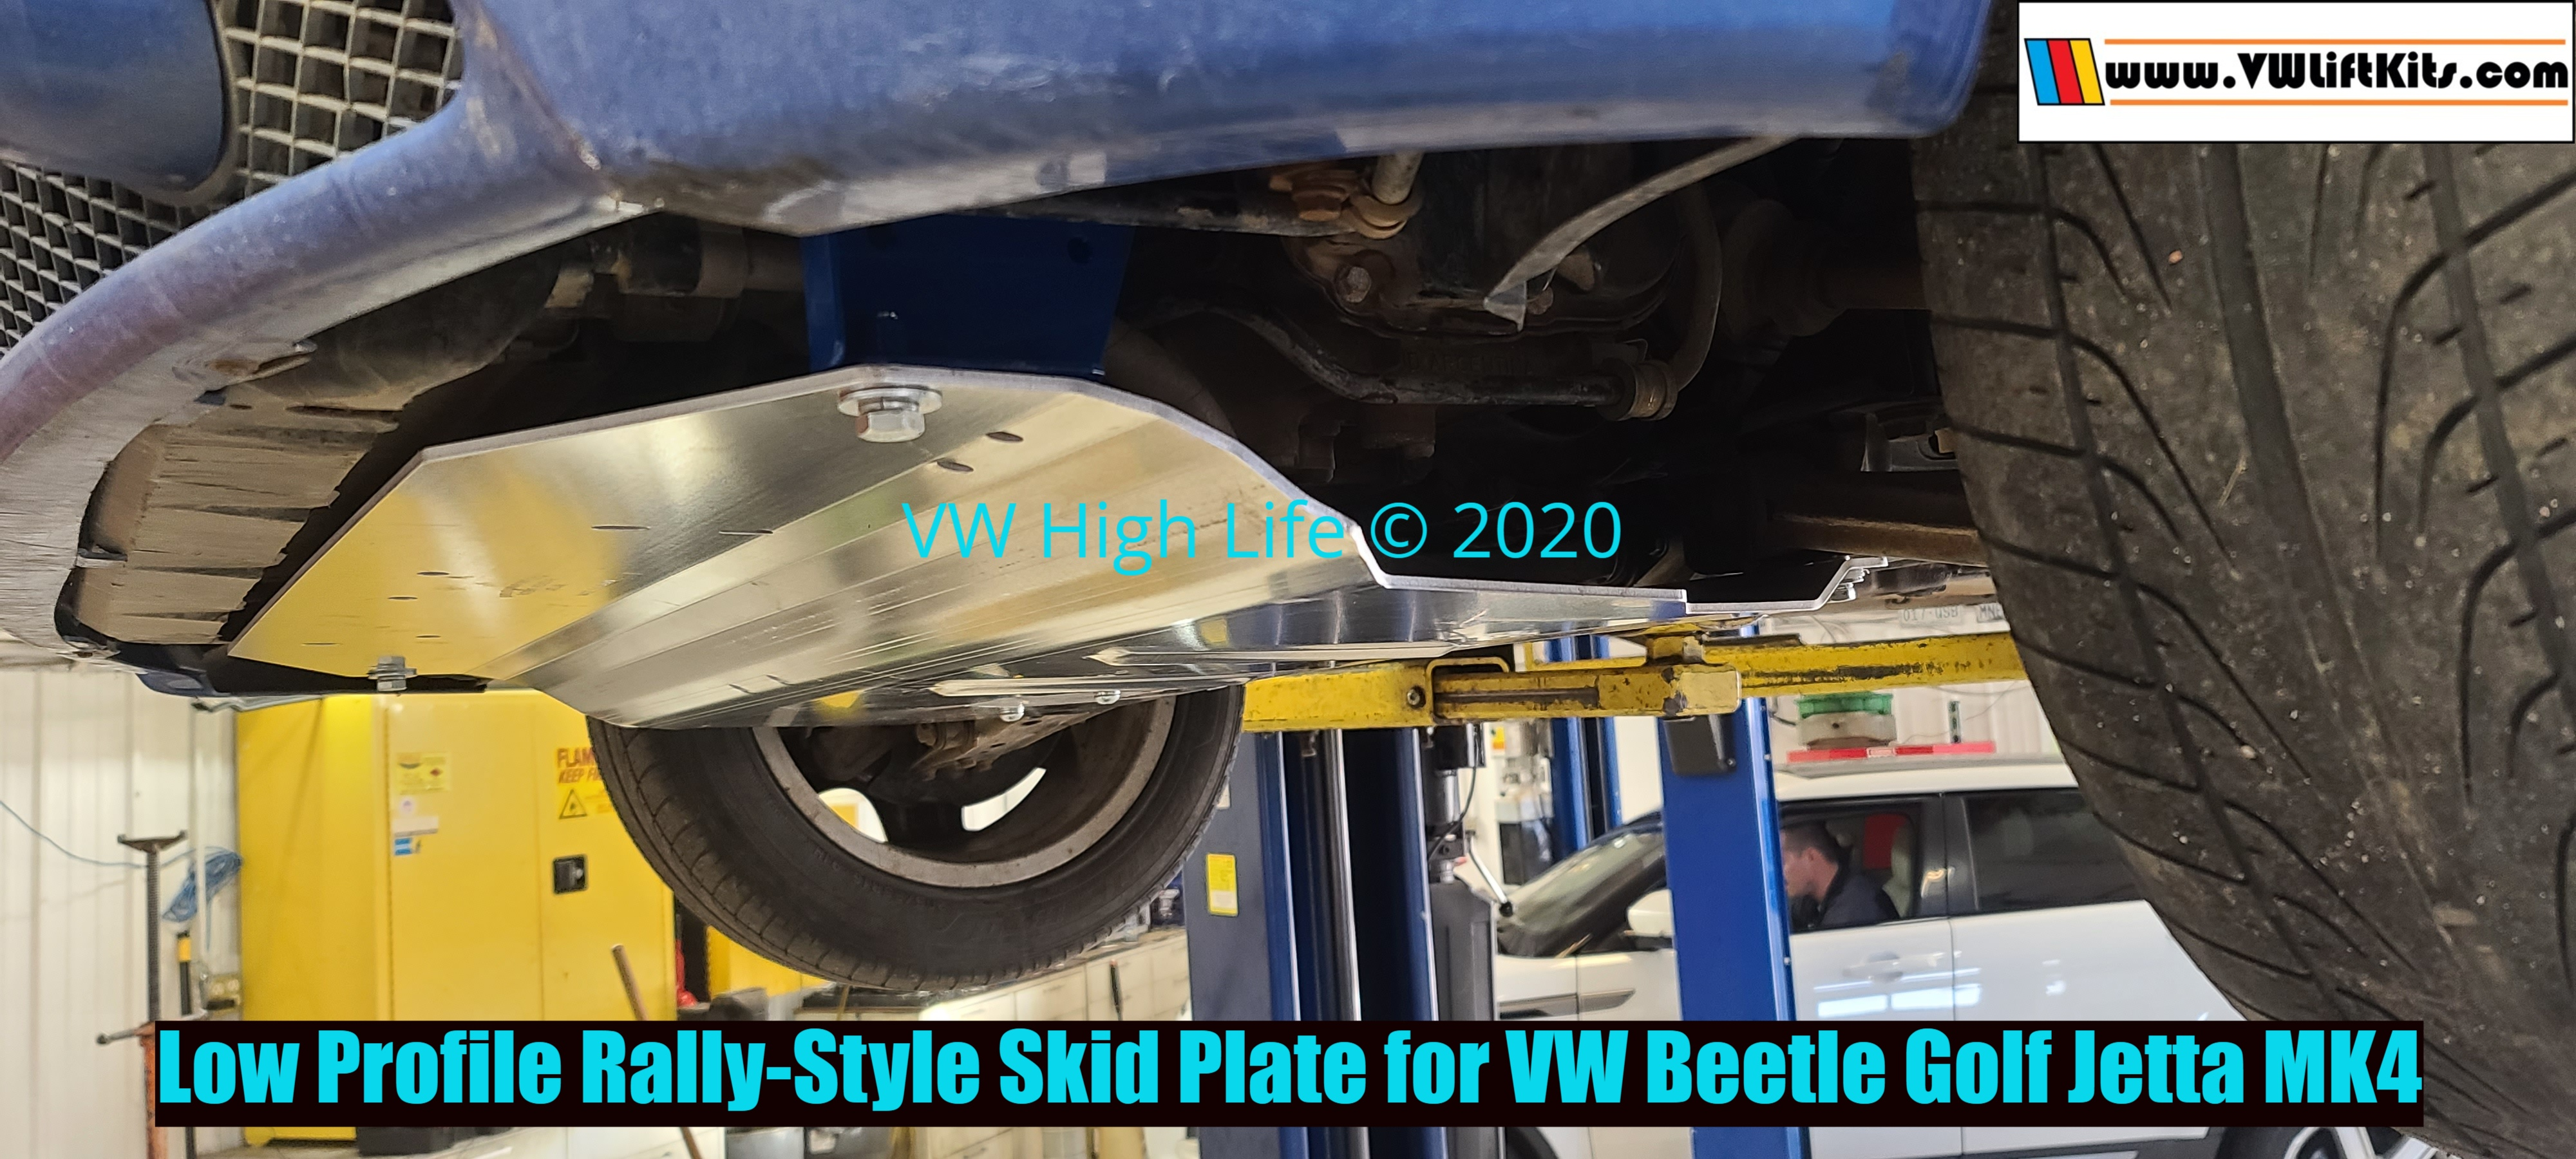 Low Profile Heavy Duty Rally-Style Skid Plate for VW Beetle Golf Jetta MK4. We ship worldwide!